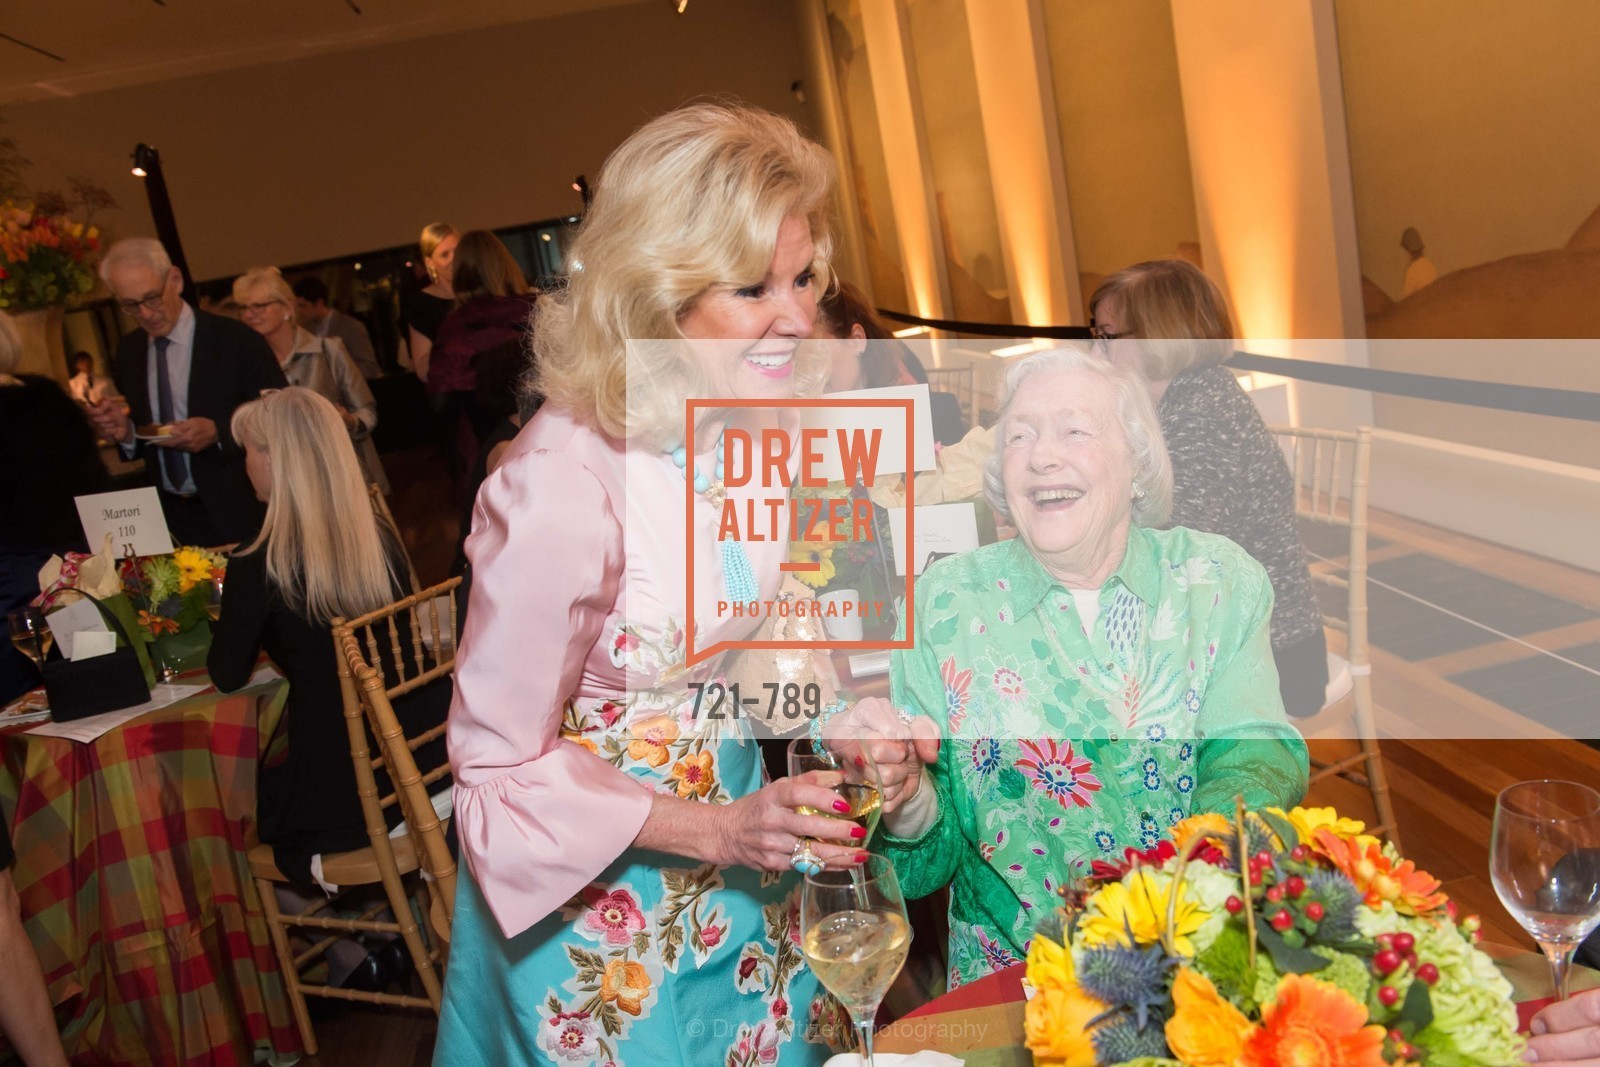 Dede Wilsey, Marianne Peterson, ALONZO KING LINE'S Ballet Spring Gala 2015, US, April 11th, 2015,Drew Altizer, Drew Altizer Photography, full-service agency, private events, San Francisco photographer, photographer california